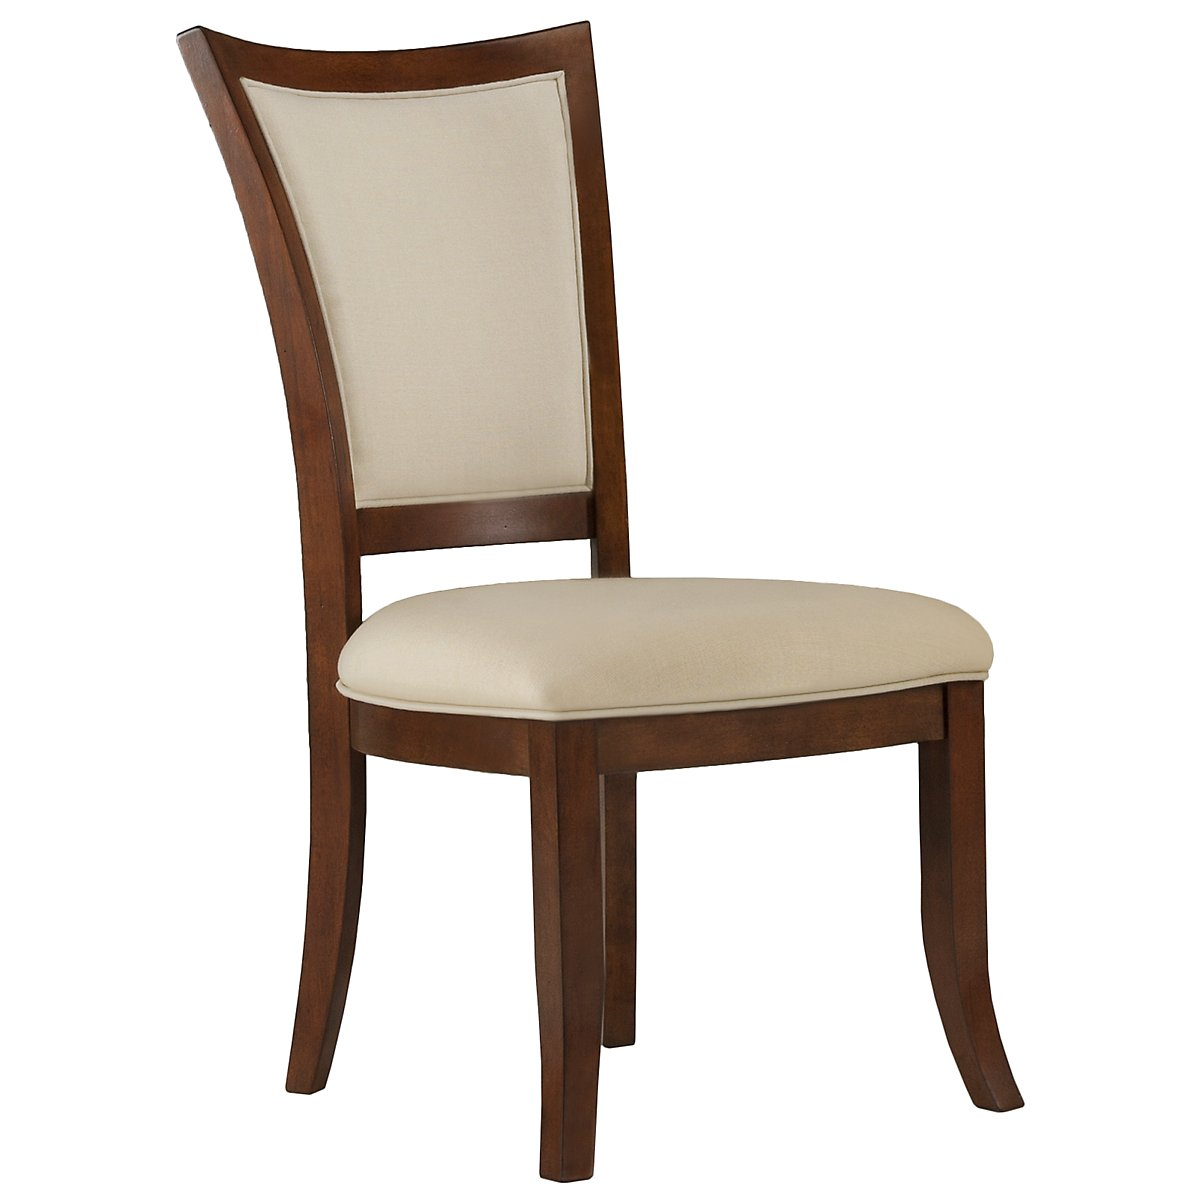 Antigua Mid Tone Upholstered Side Chair